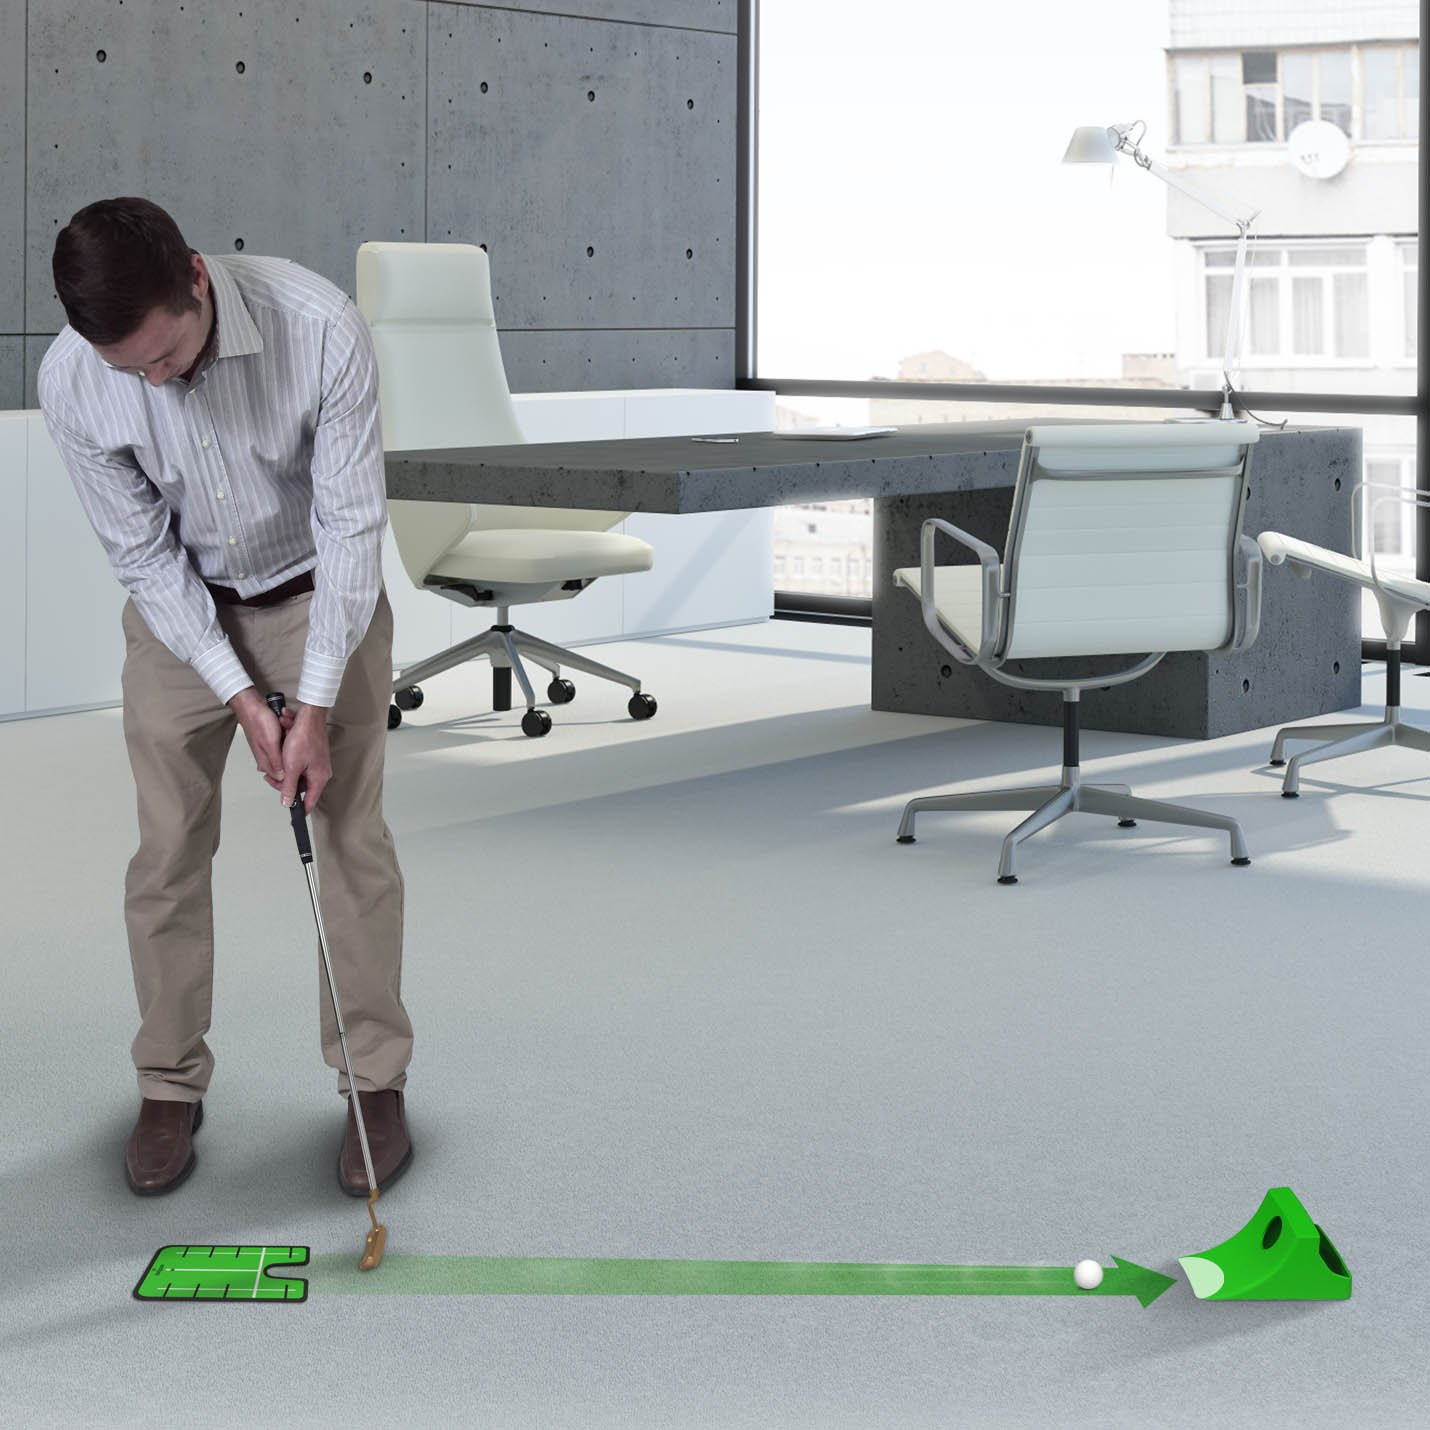 GoSports Puttster Golf Putting Training Aid - Alignment Guide with Cup Ramp Return System for Indoor or Outdoor Practice by GoSports (Image #3)